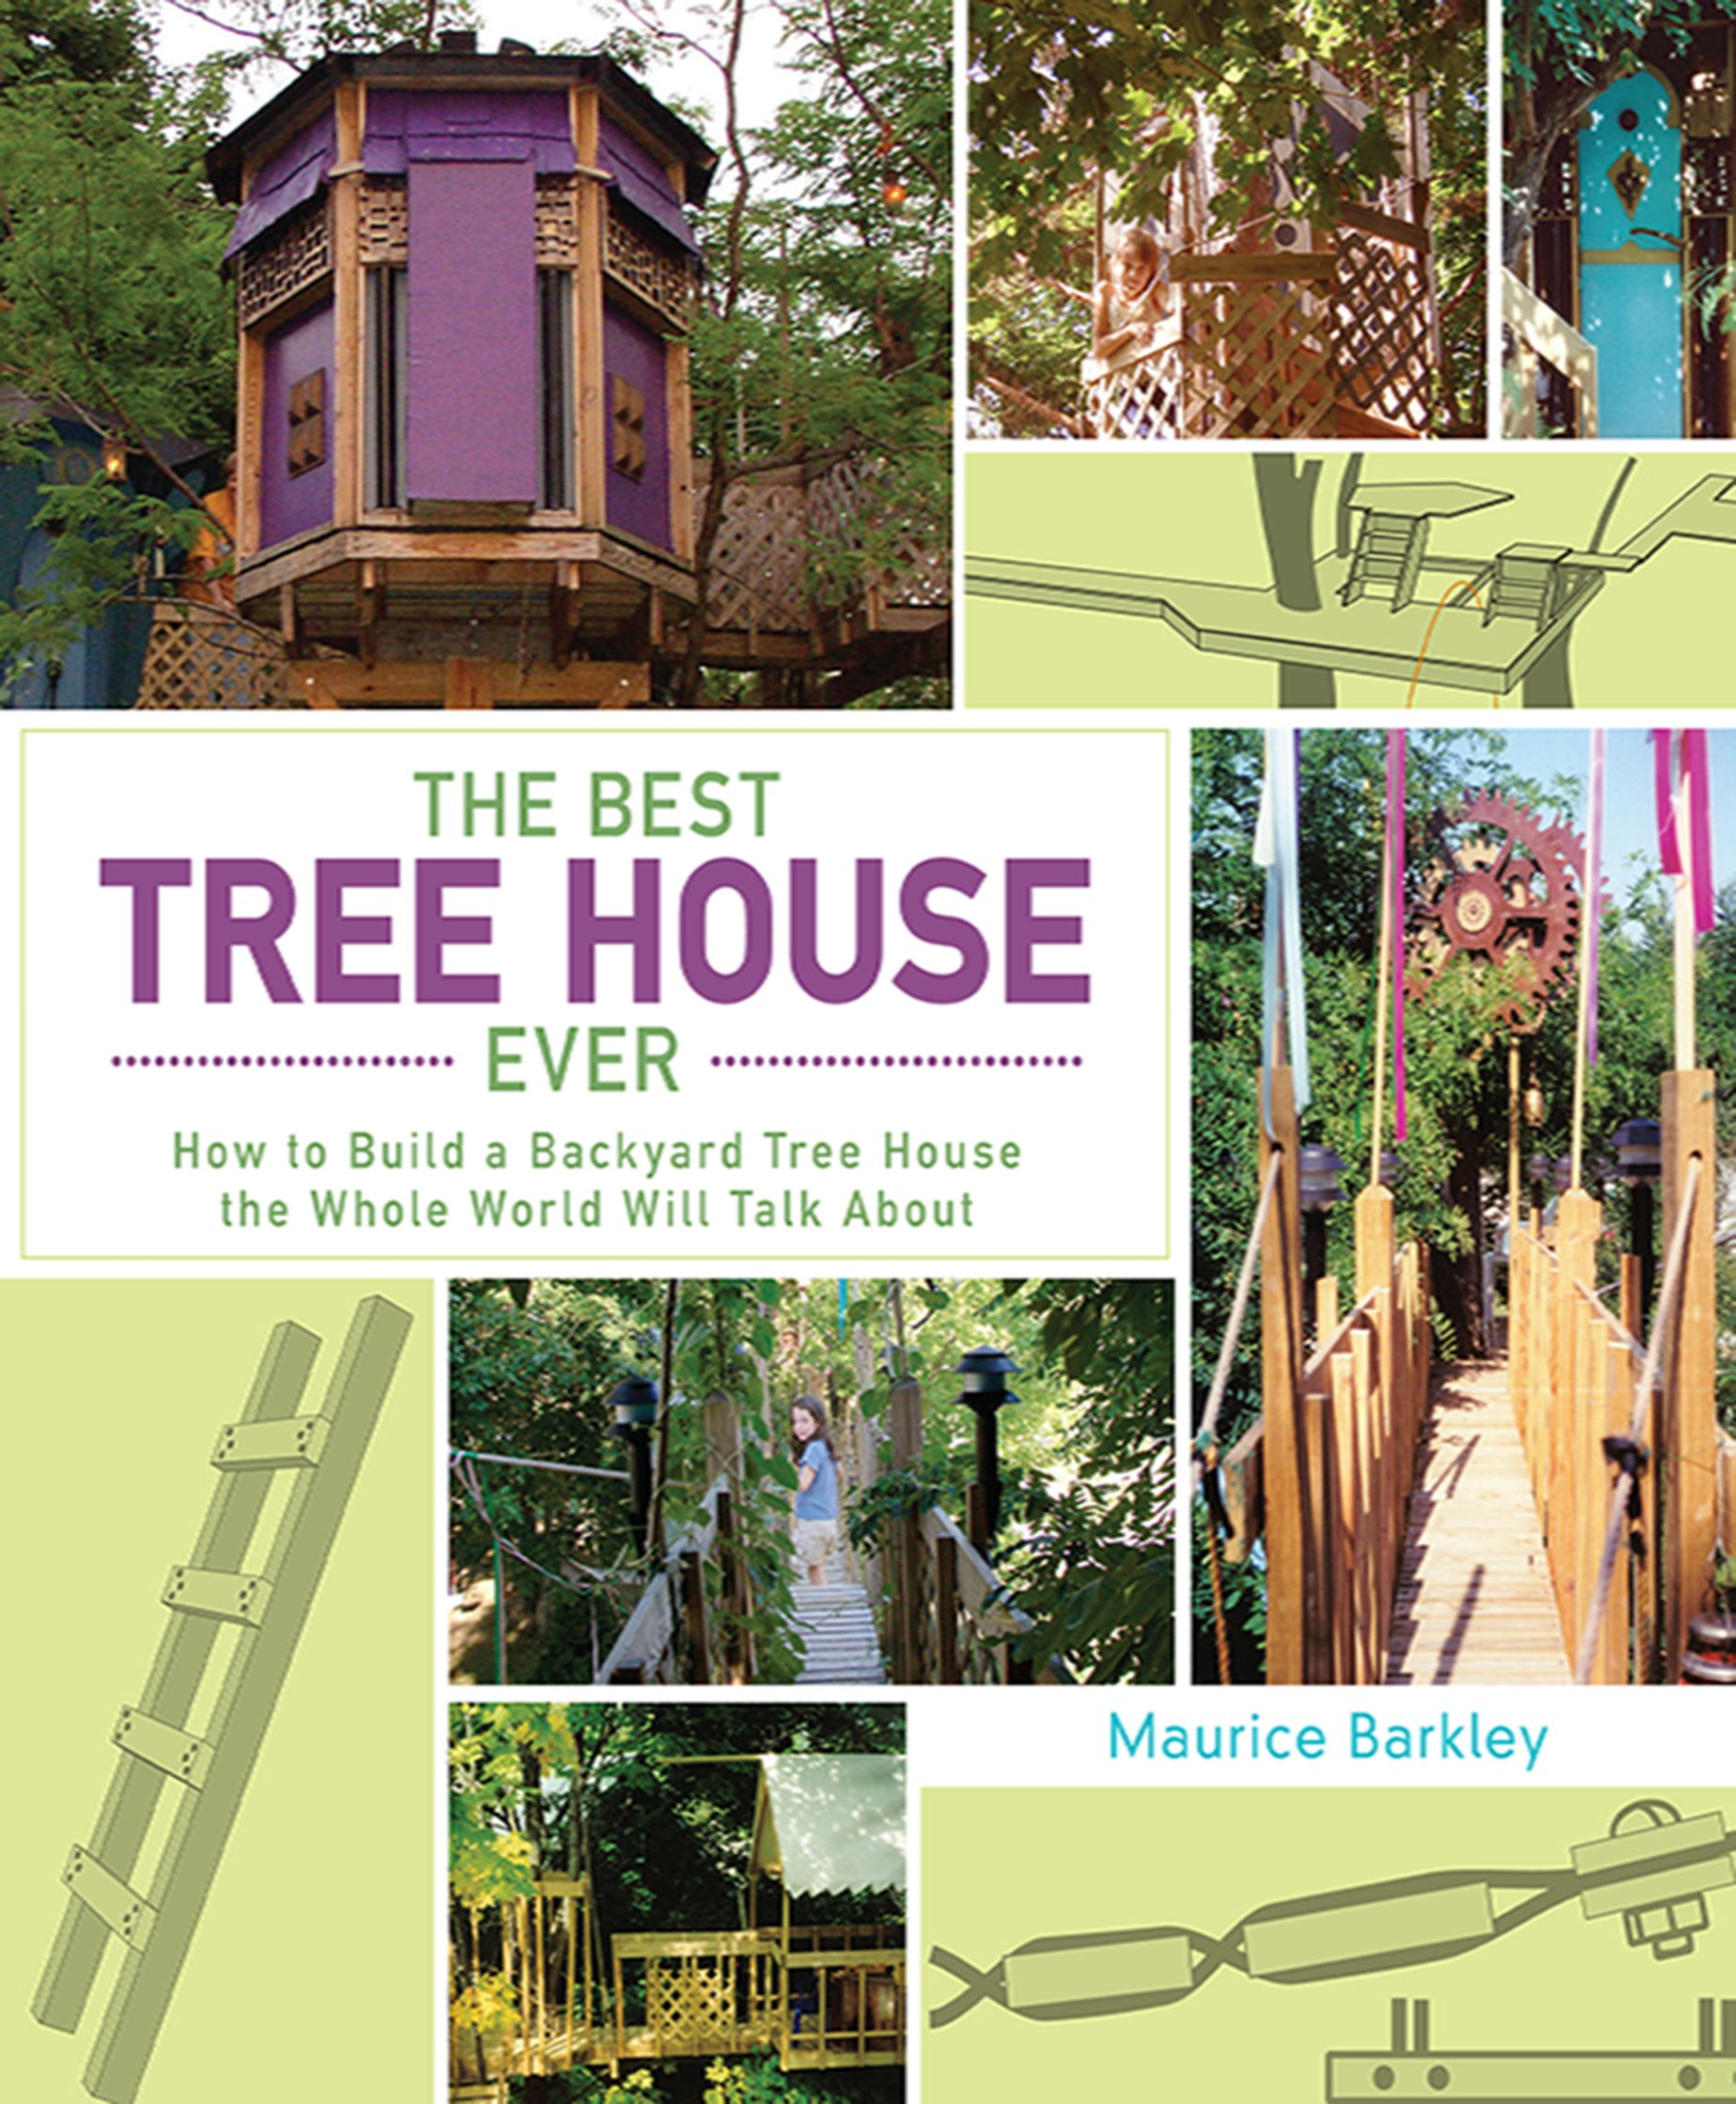 The Best Tree House Ever How To Build A Backyard Whole World Will Talk About Maurice Barkley 9781620875711 Amazon Books